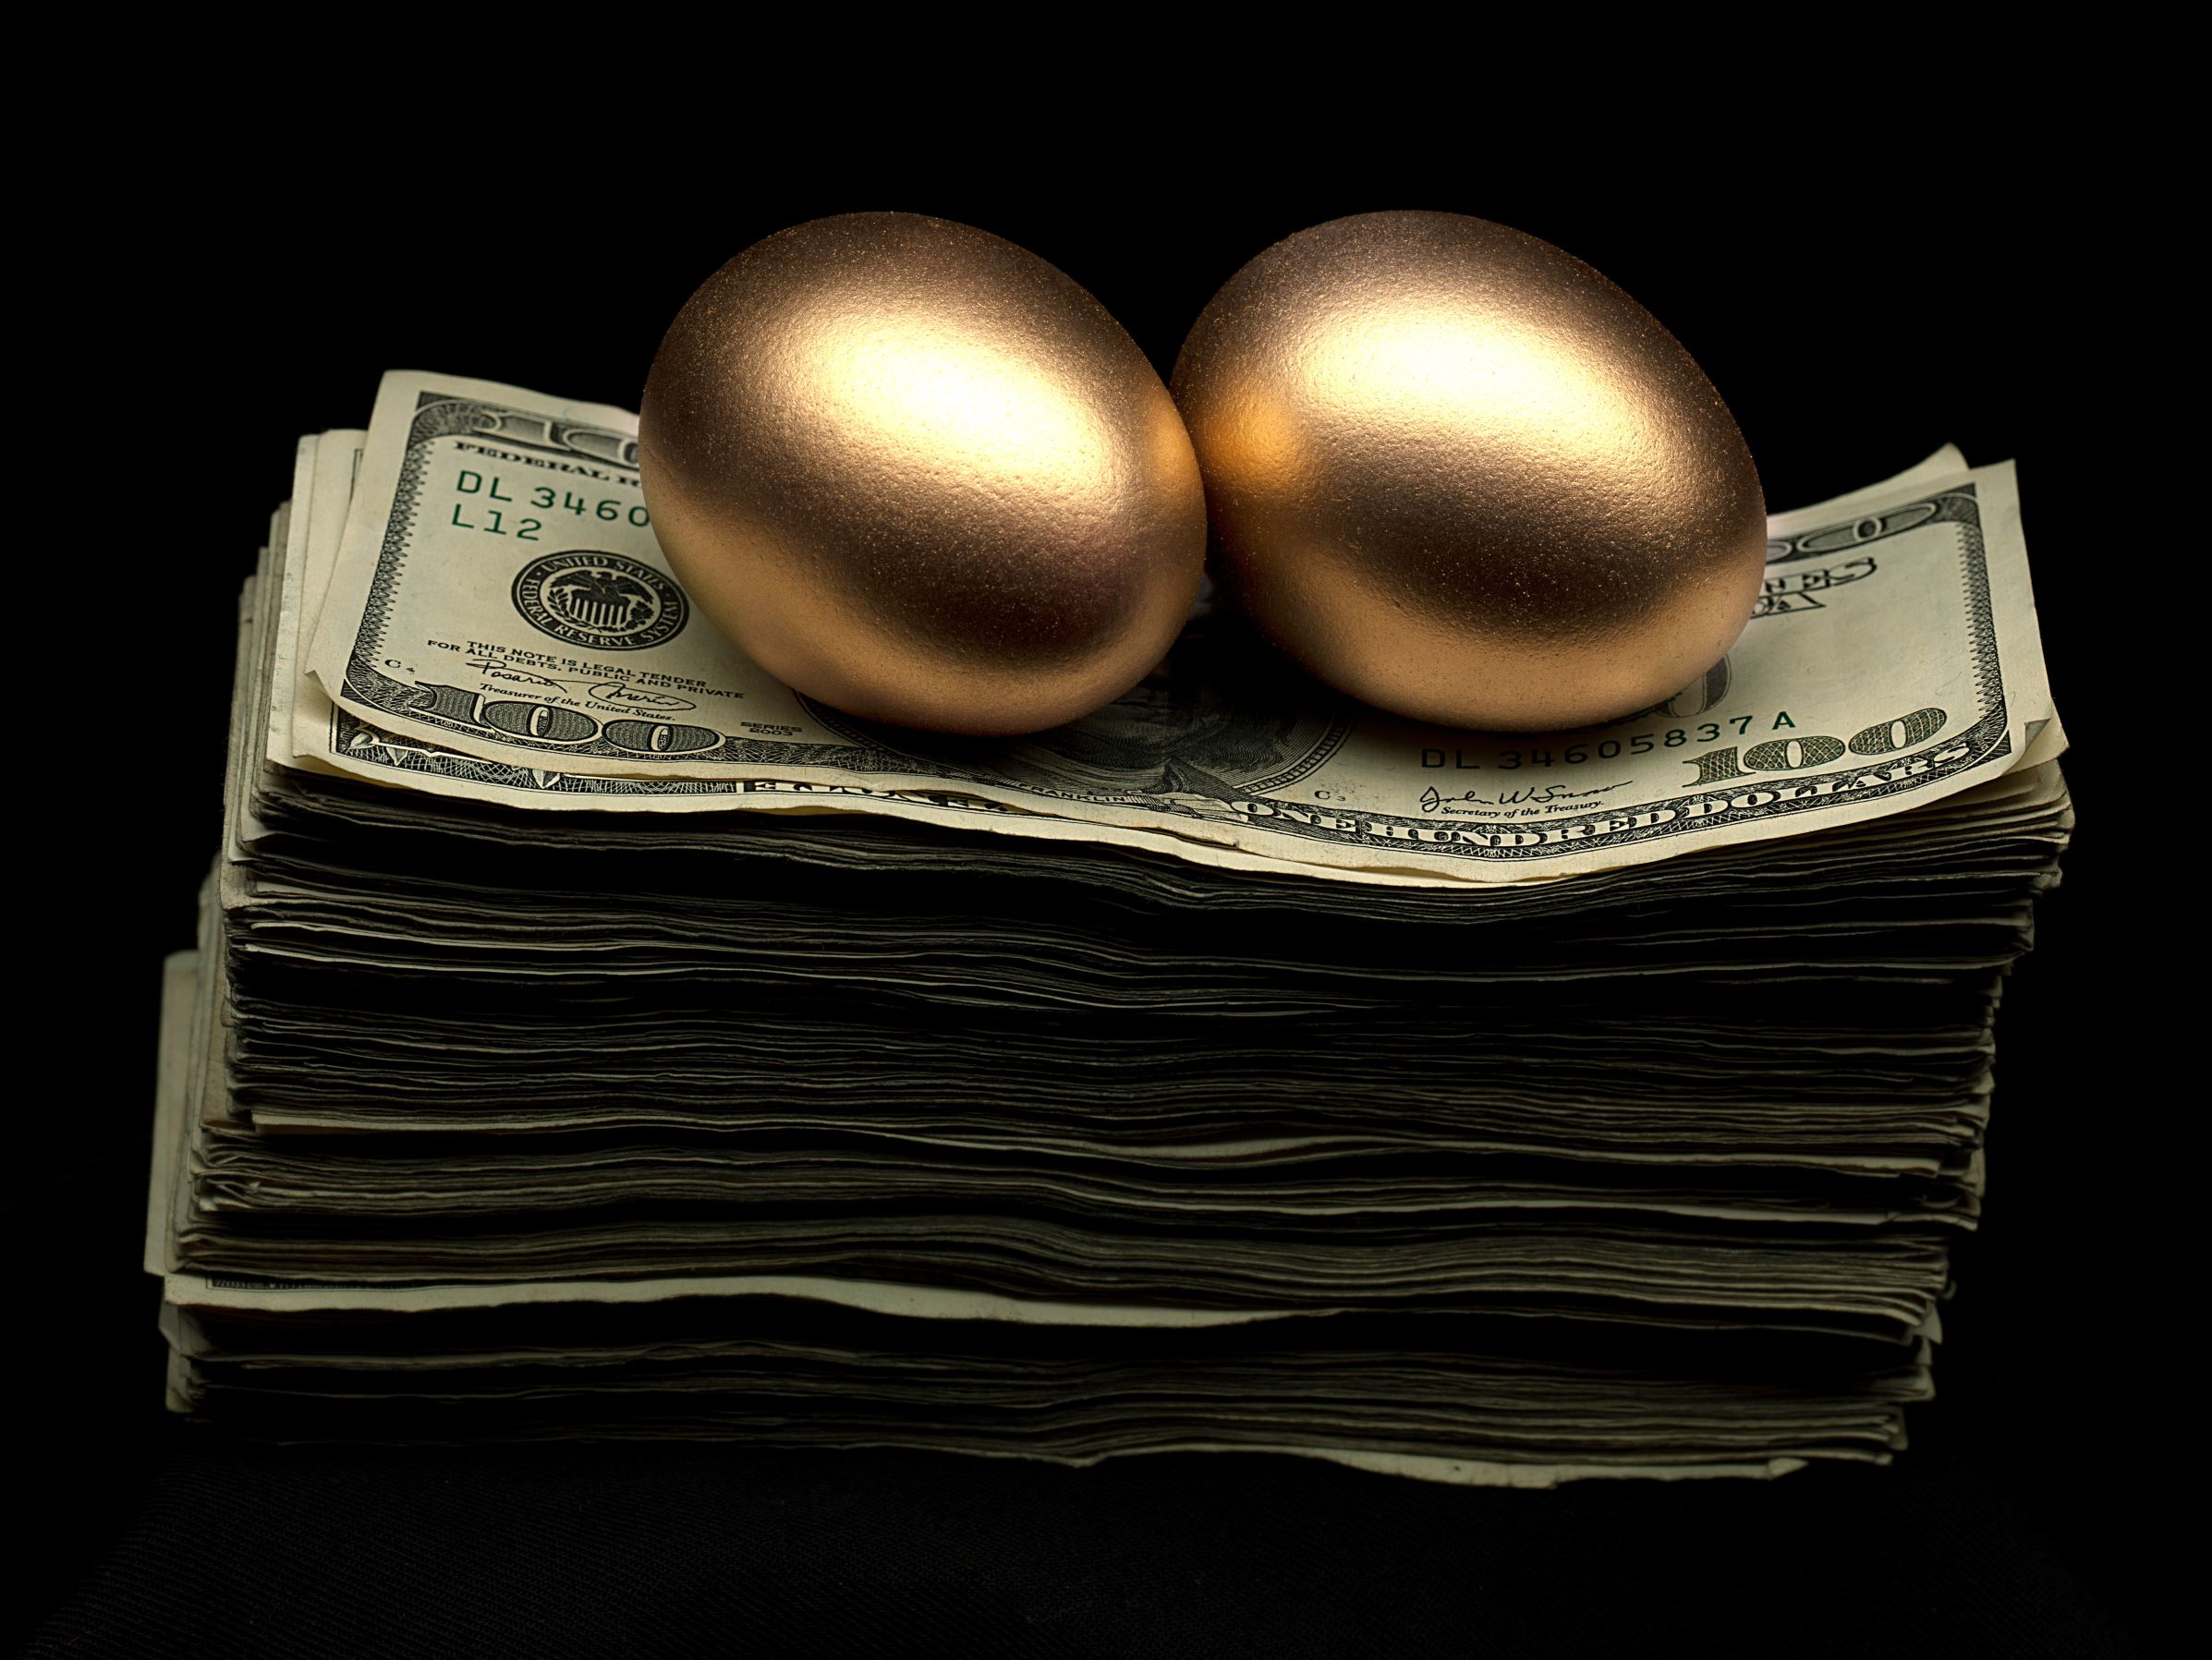 Two gold eggs on pile of cash. Adrianna Williams/Getty Images